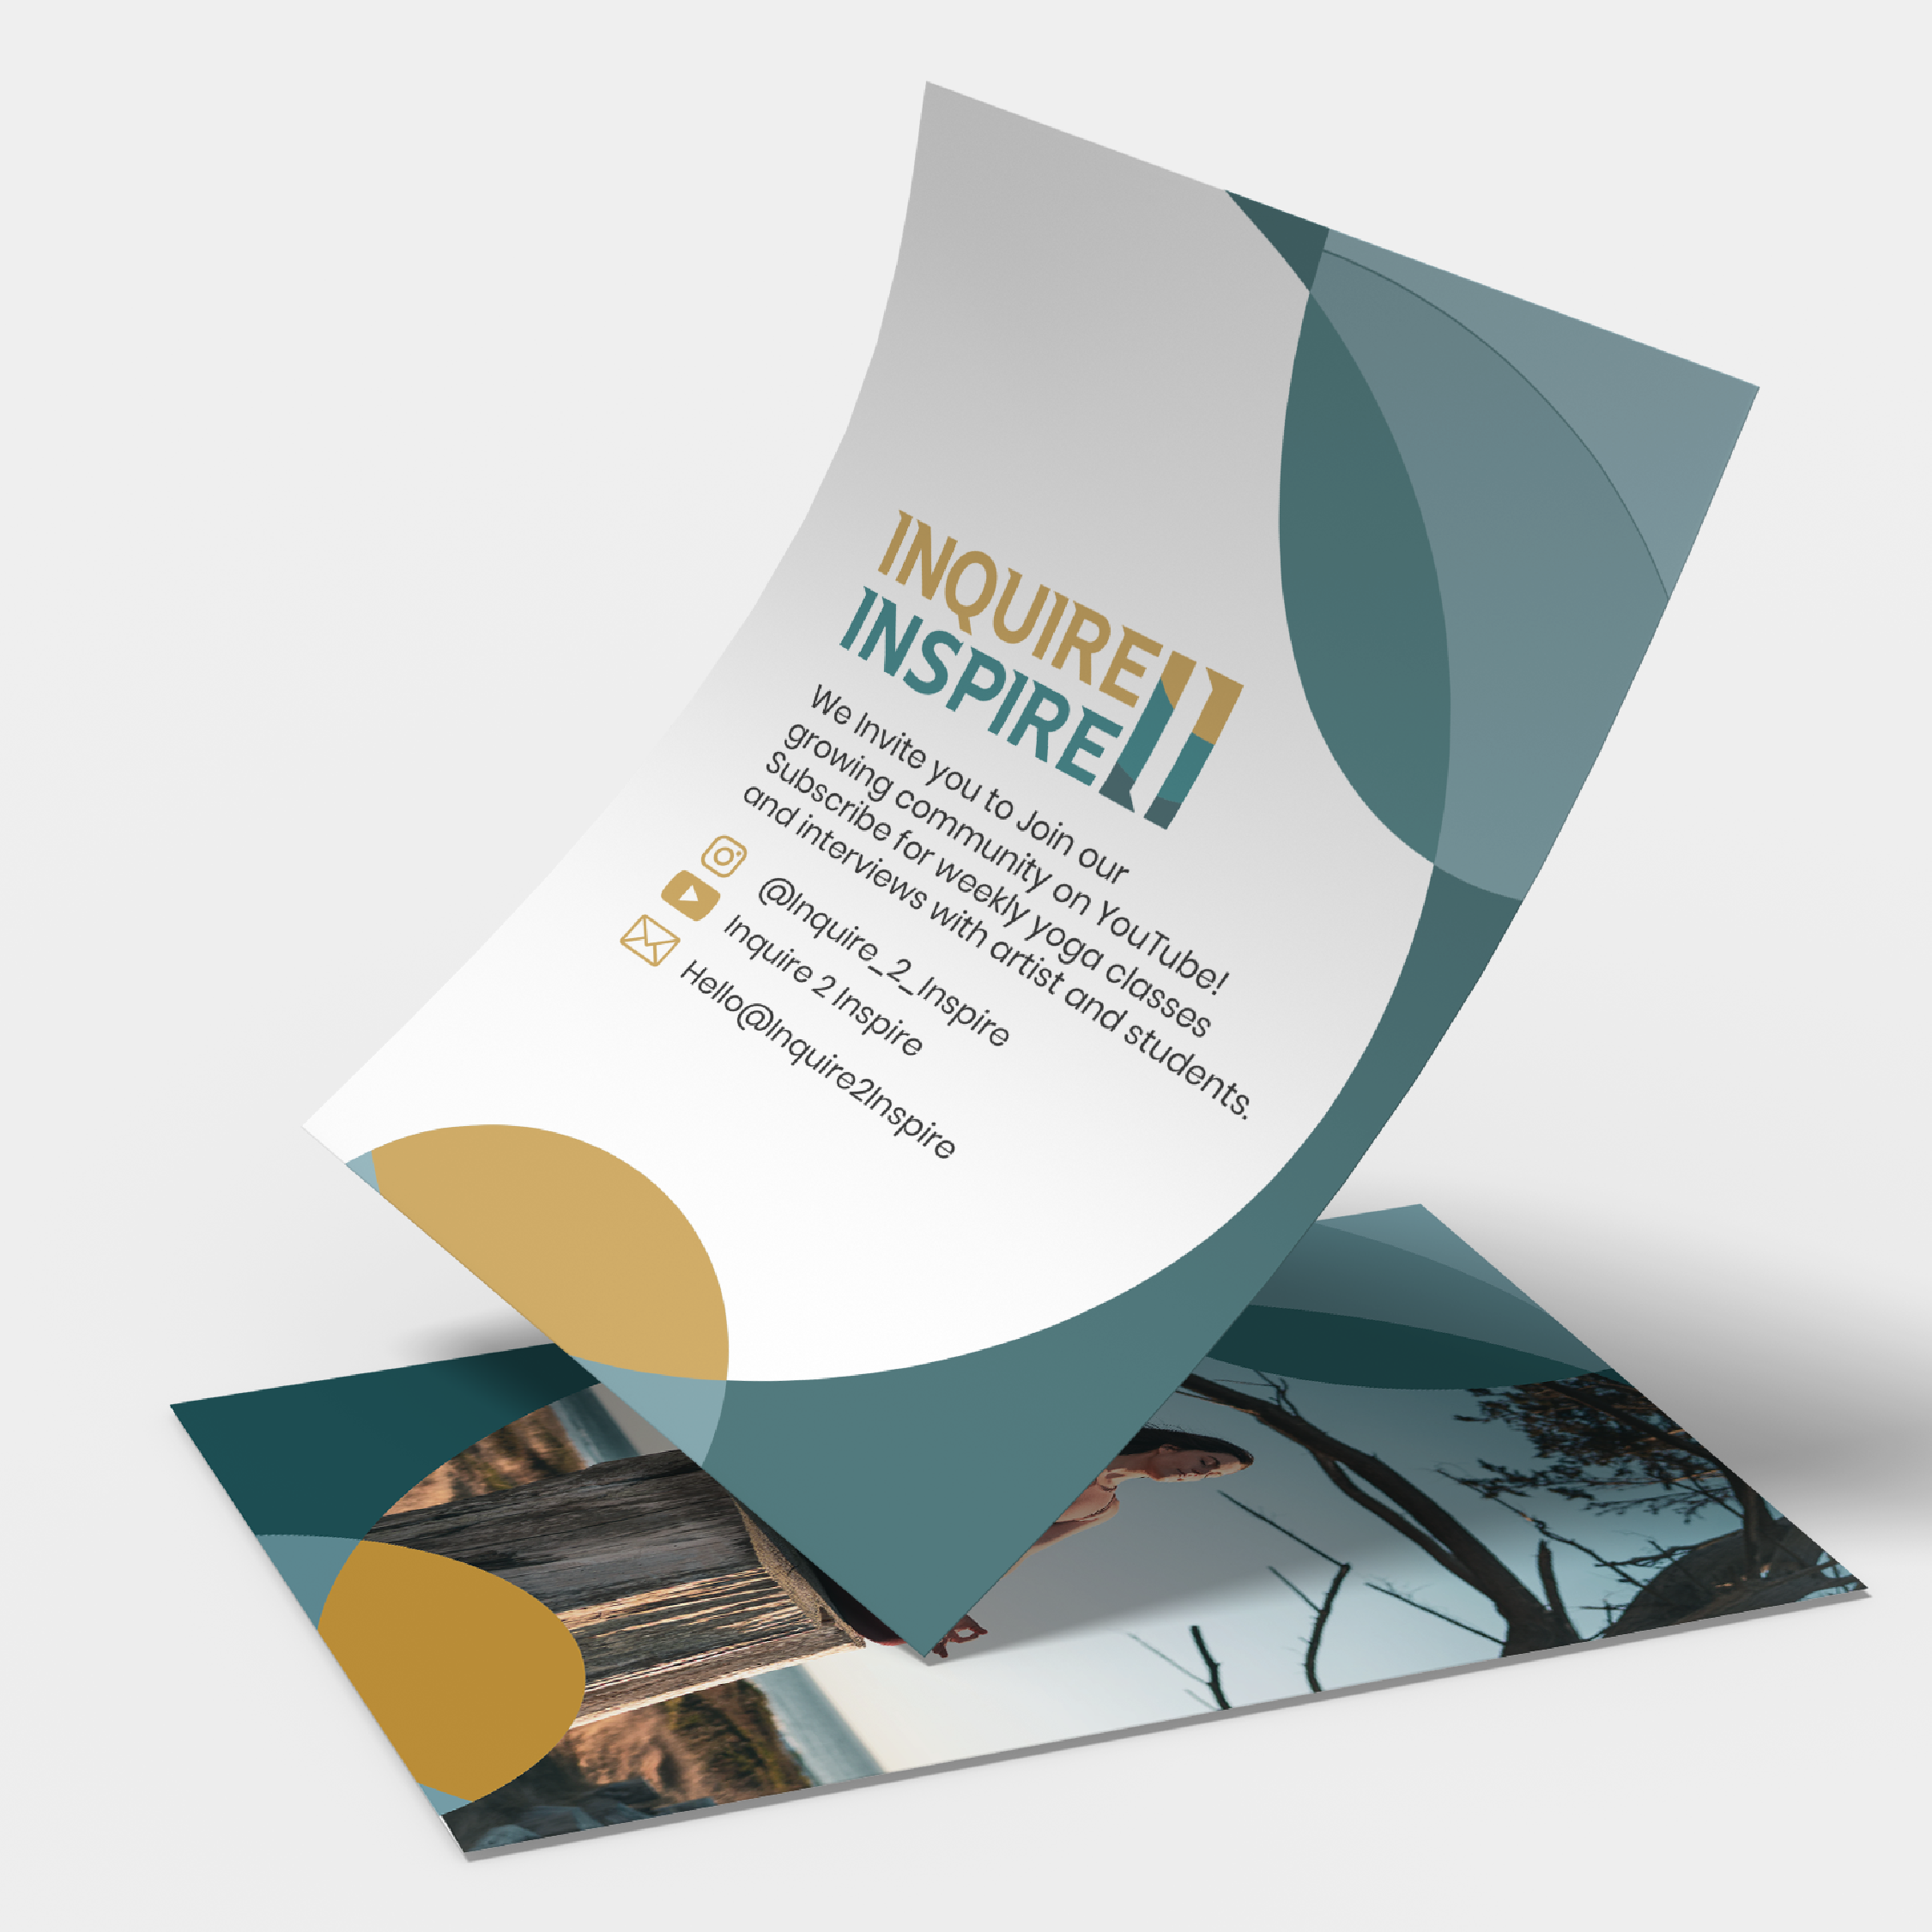 Branding created for Inqiure 2 Inspire by VZNCY